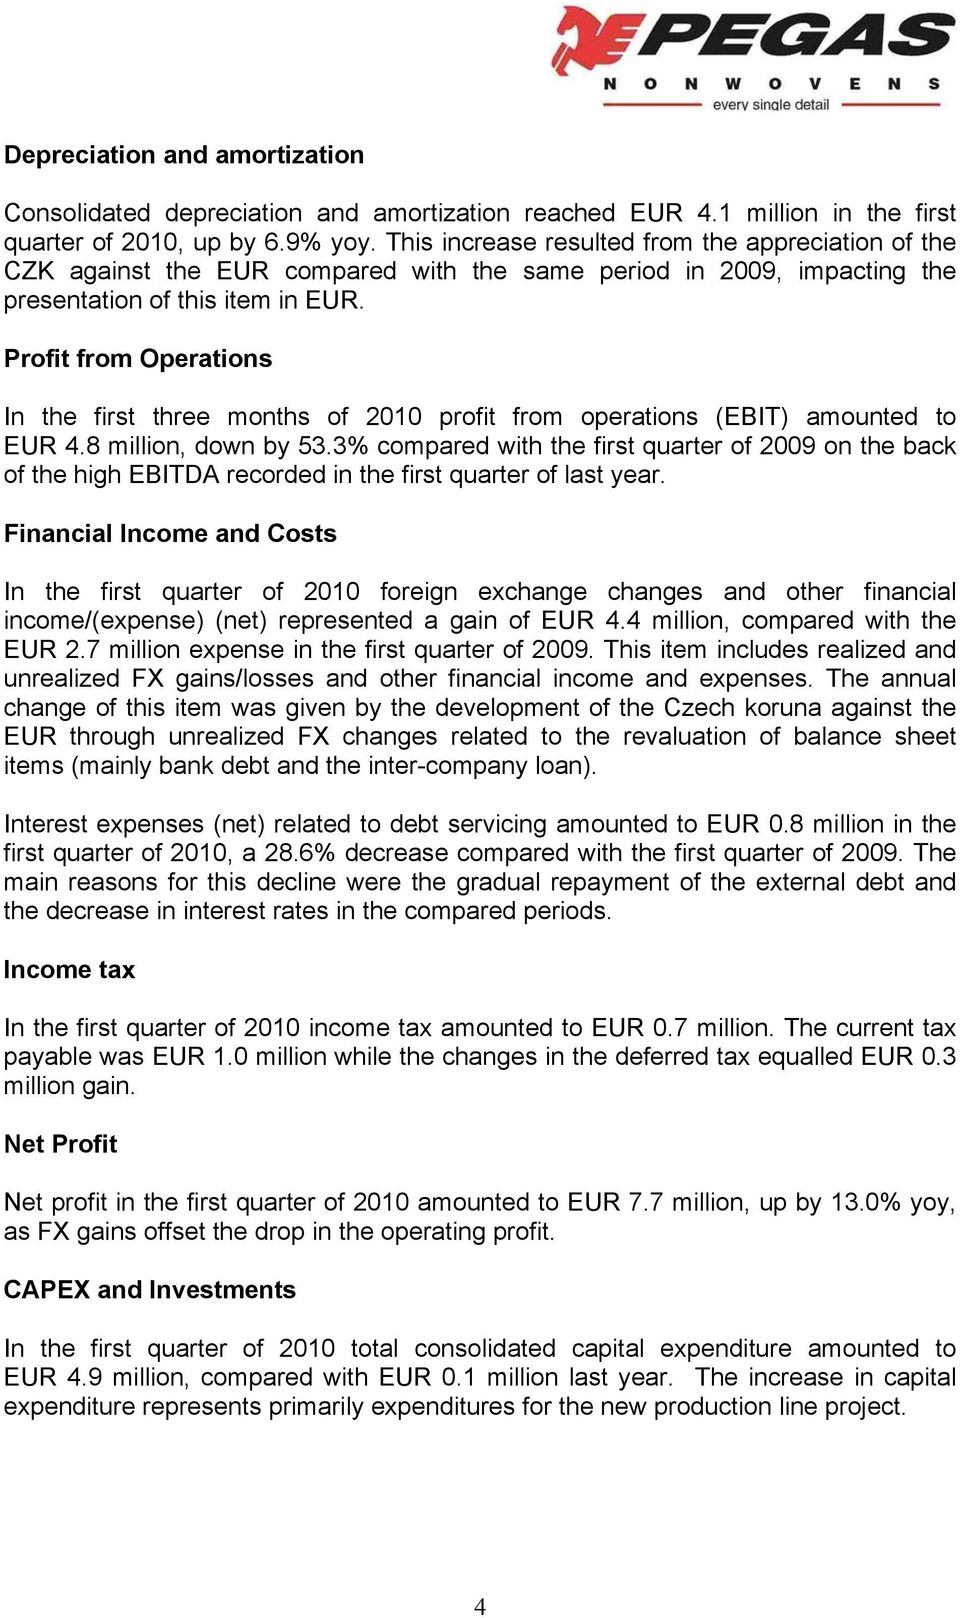 Profit from Operations In the first three months of 2010 profit from operations (EBIT) amounted to EUR 4.8 million, down by 53.